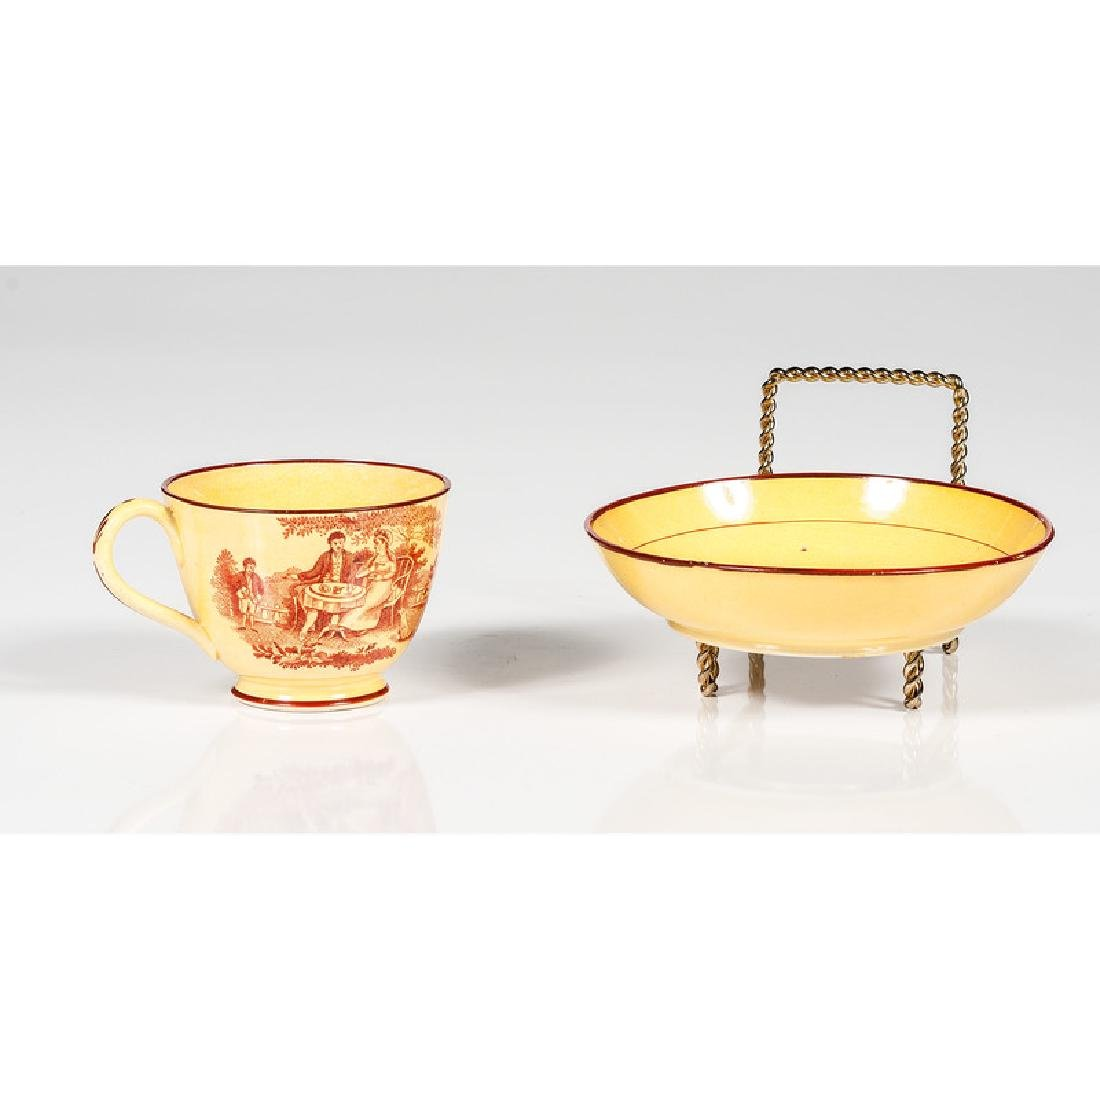 Canary Transfer Cup and Saucer